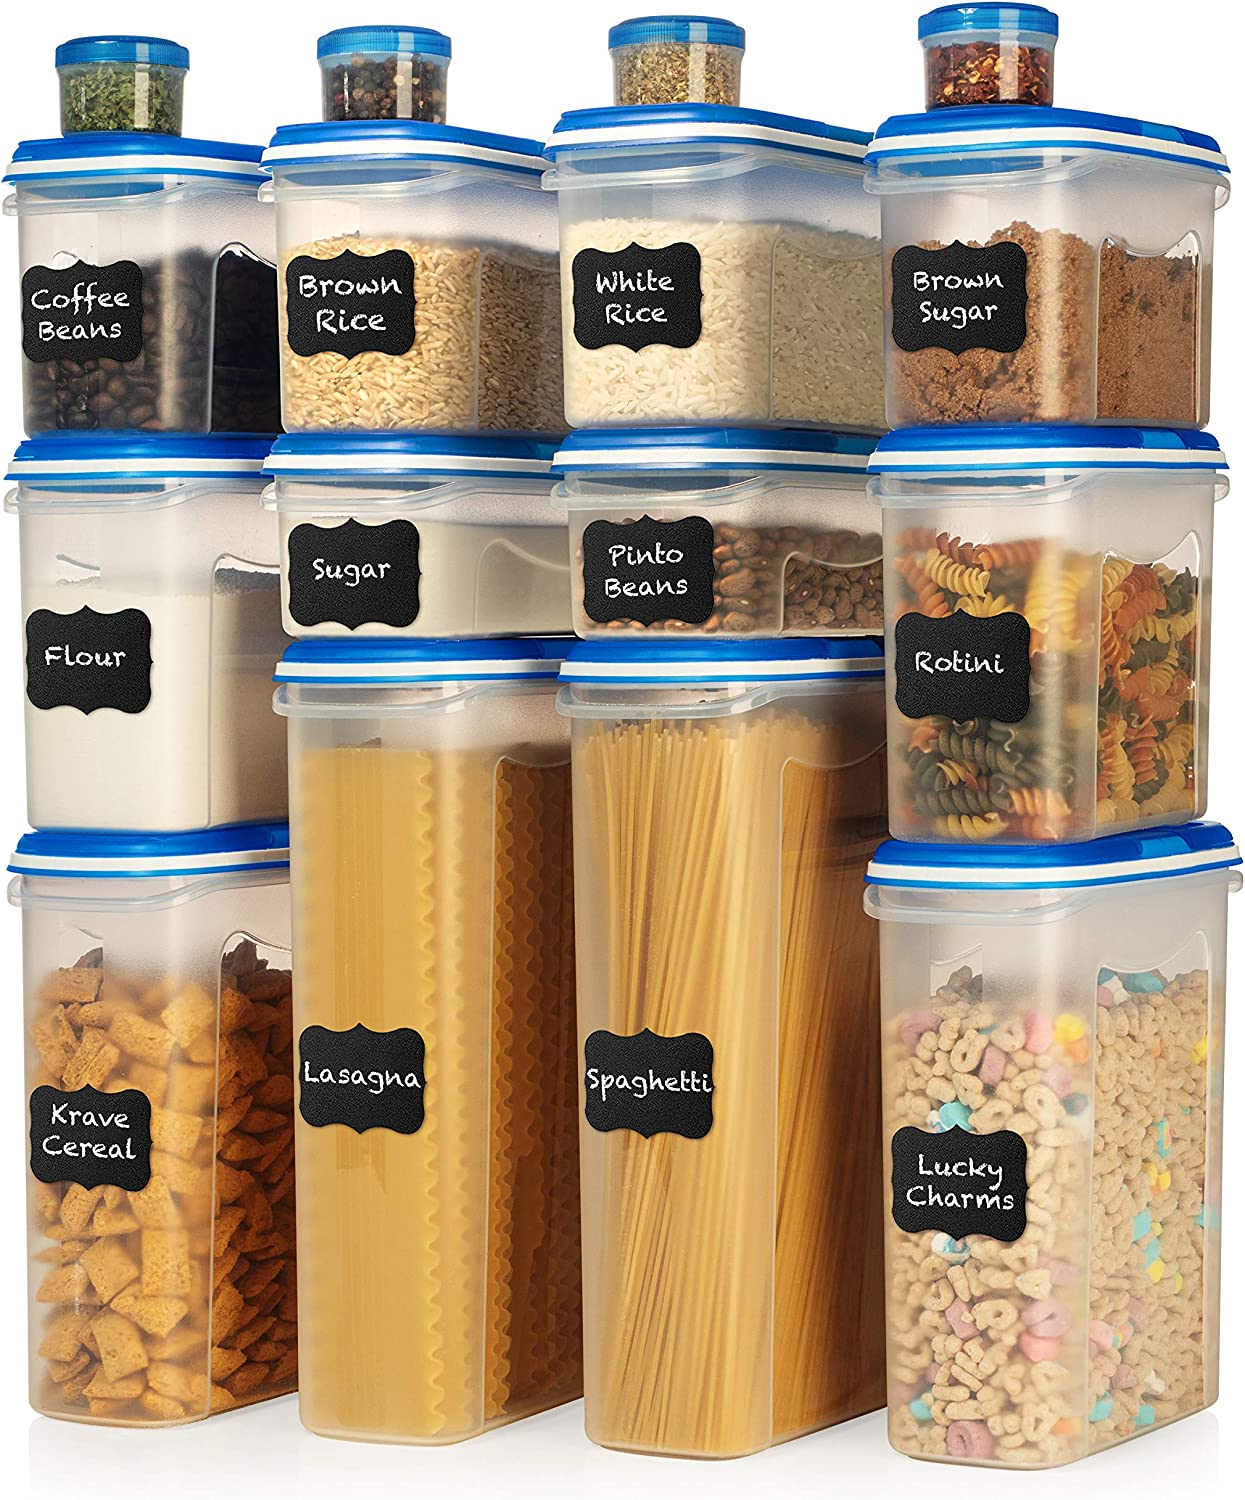 LARGE SET 32 pc Airtight Food Storage Containers with Lids (16 Container Set) Airtight Plastic Dry Food Space Saver Boxes, One Lid Fits All - Stackable Freezer Refrigerator kitchen Storage Containers